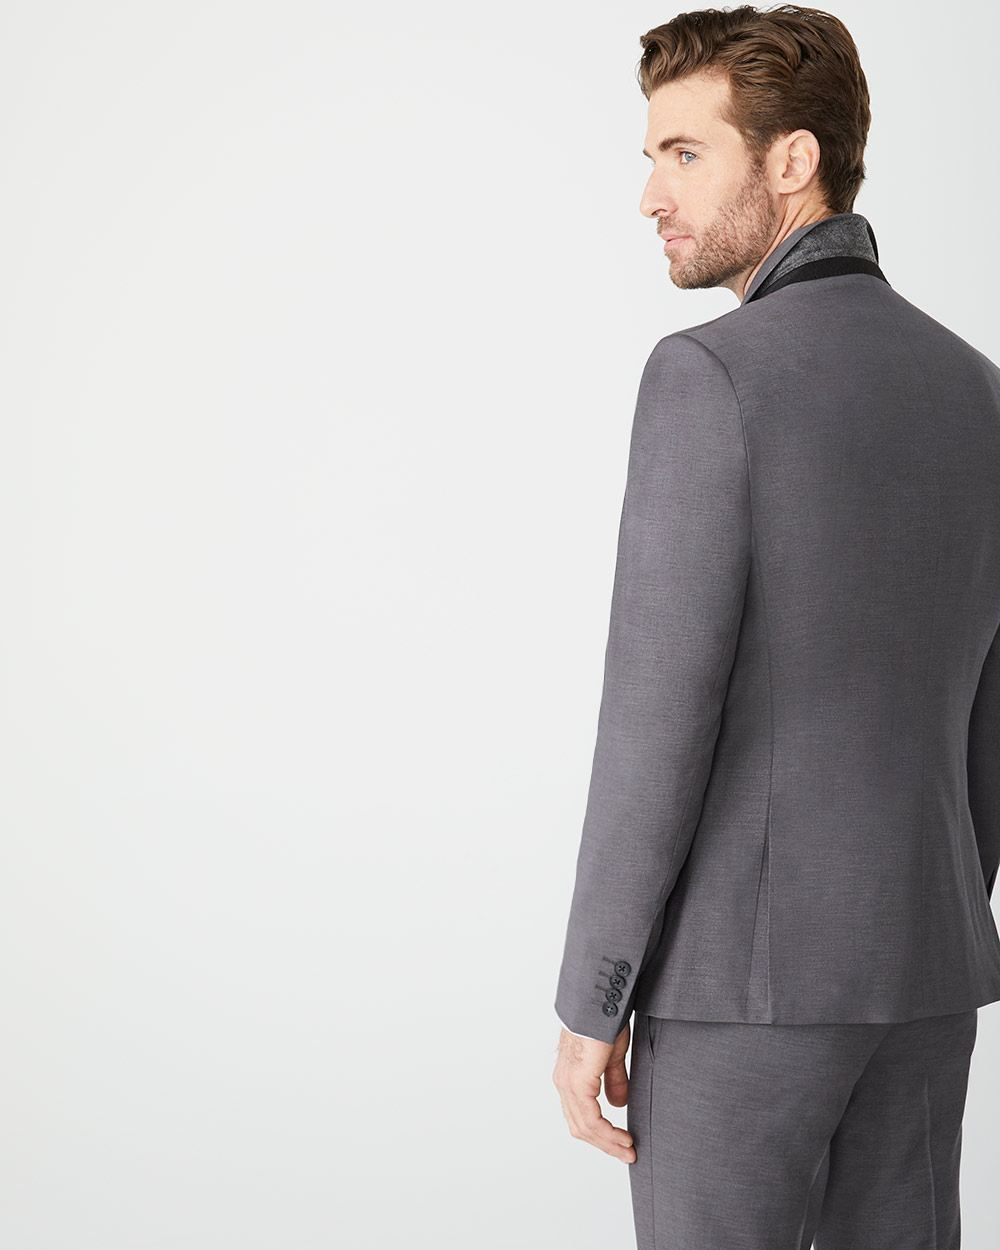 Essential Slim Fit suit Blazer - Tall